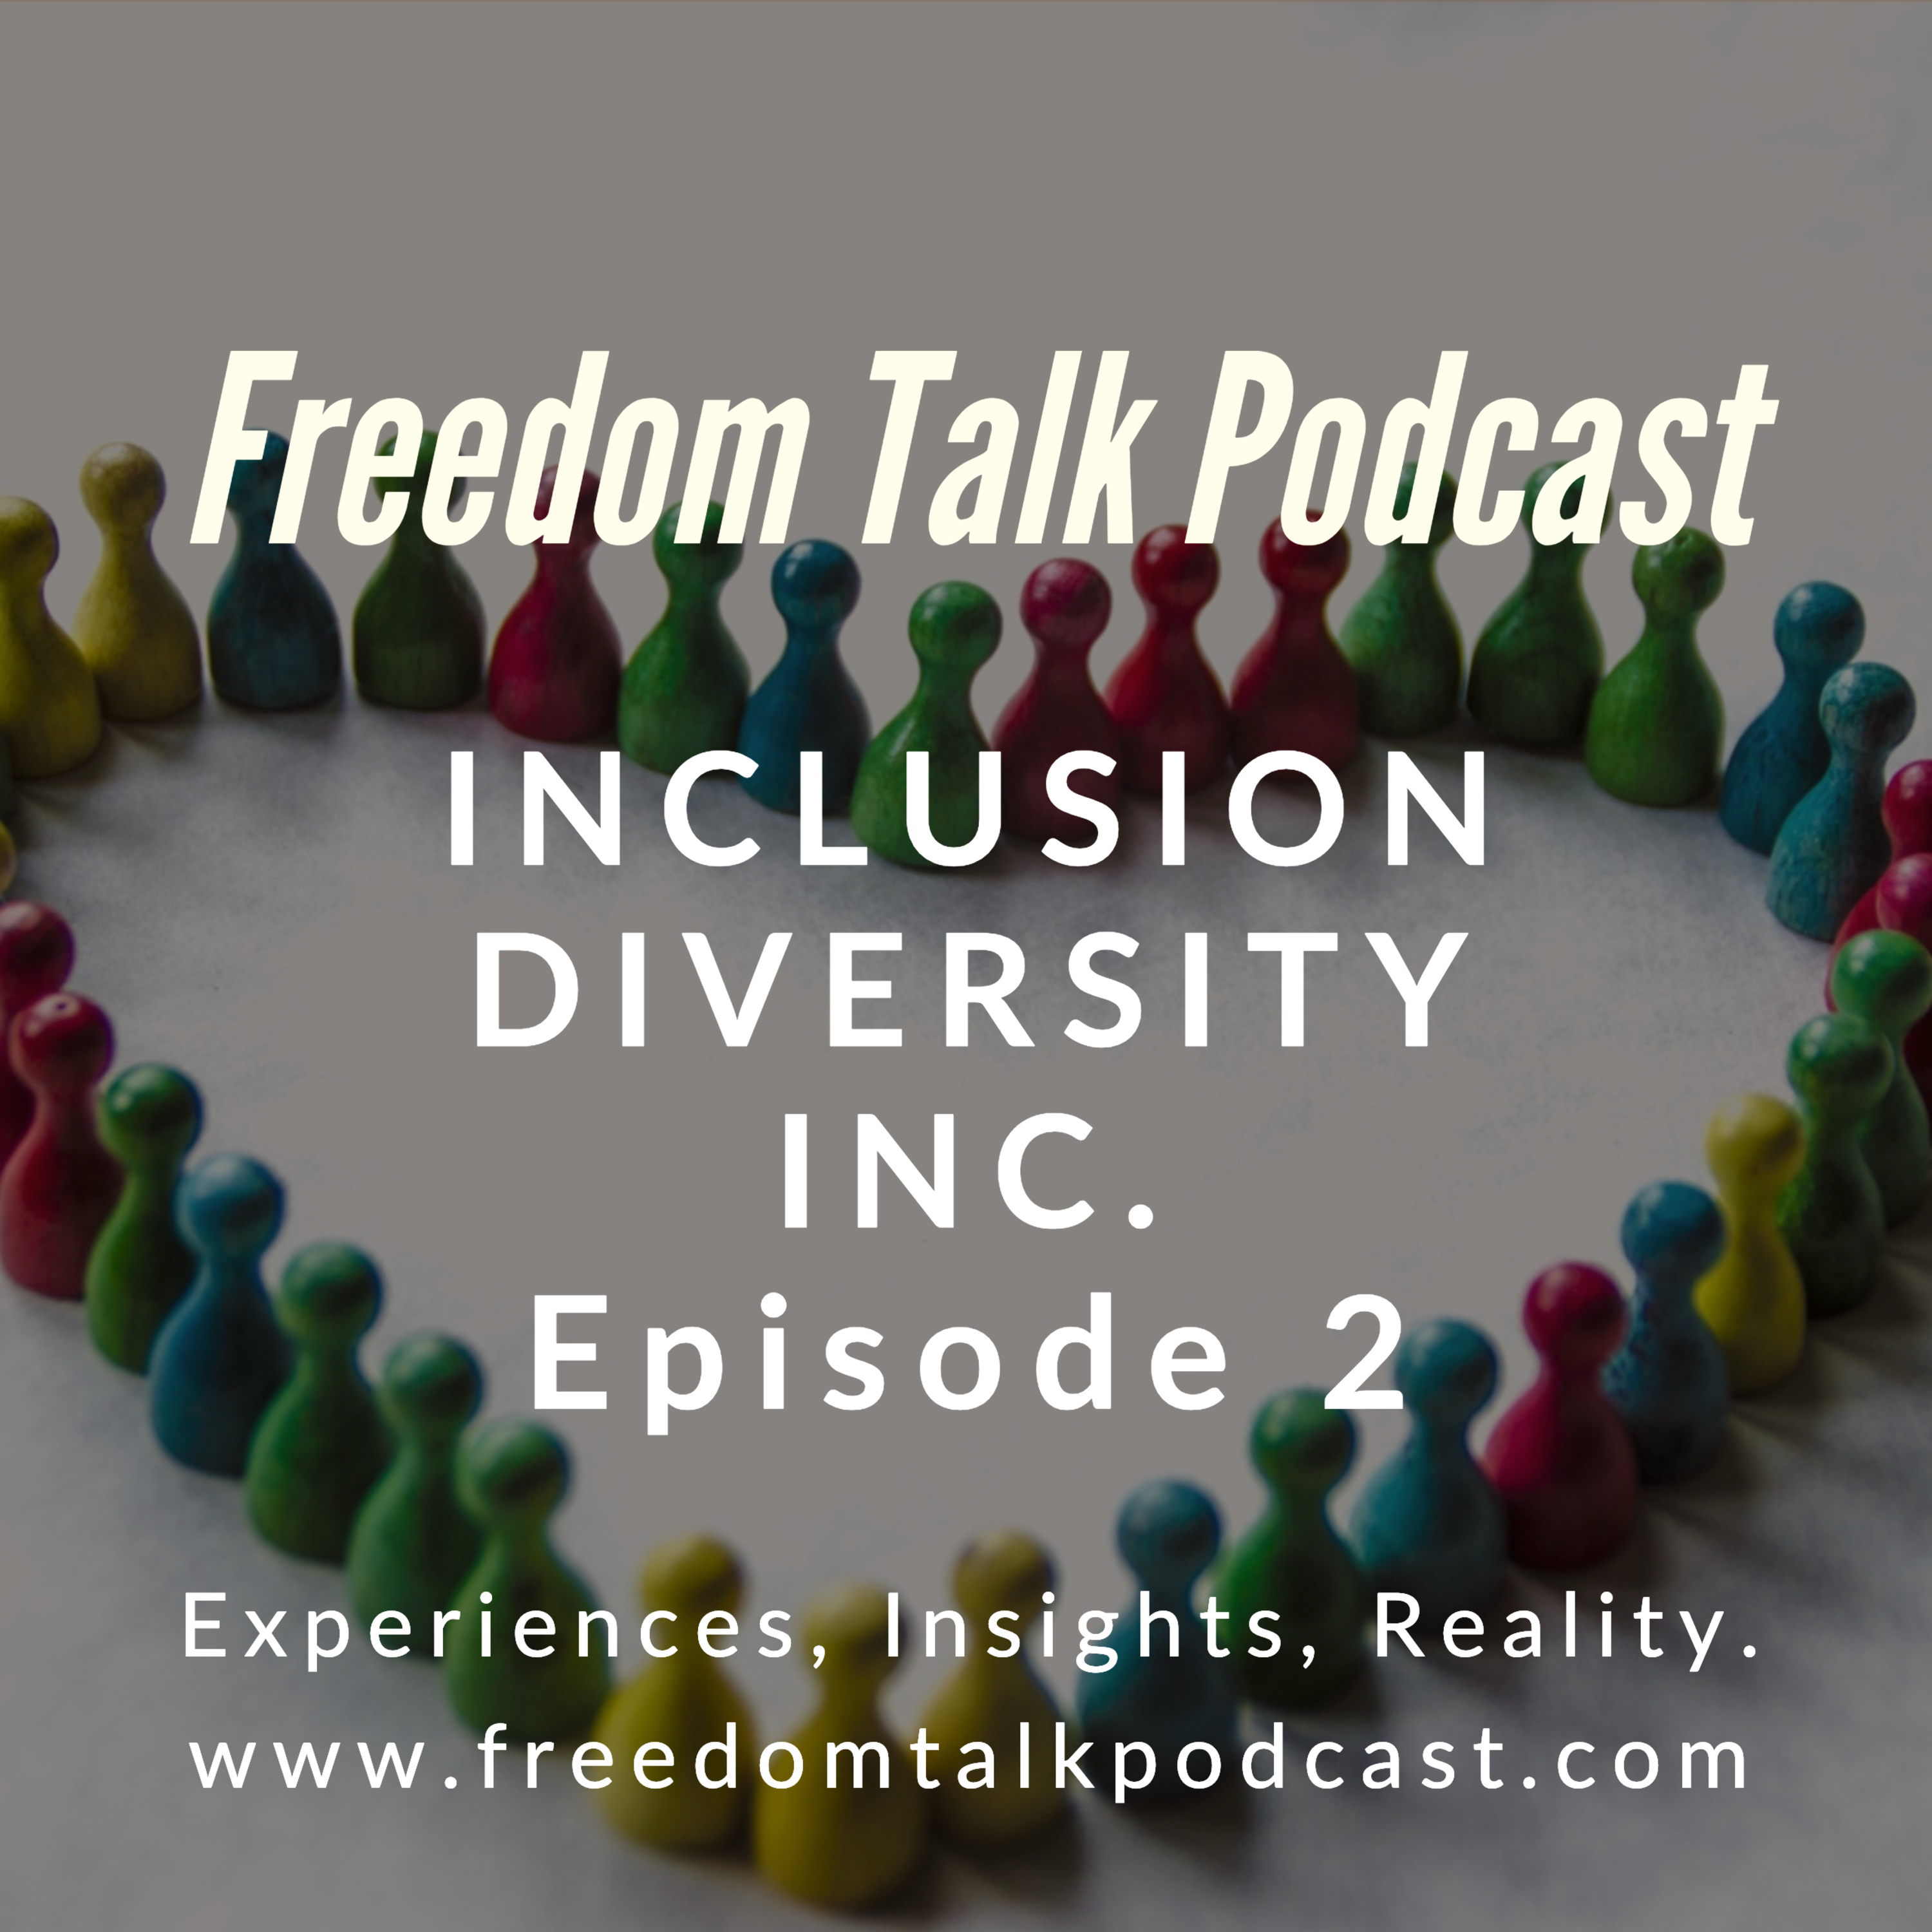 Freedom Talk Episode 2